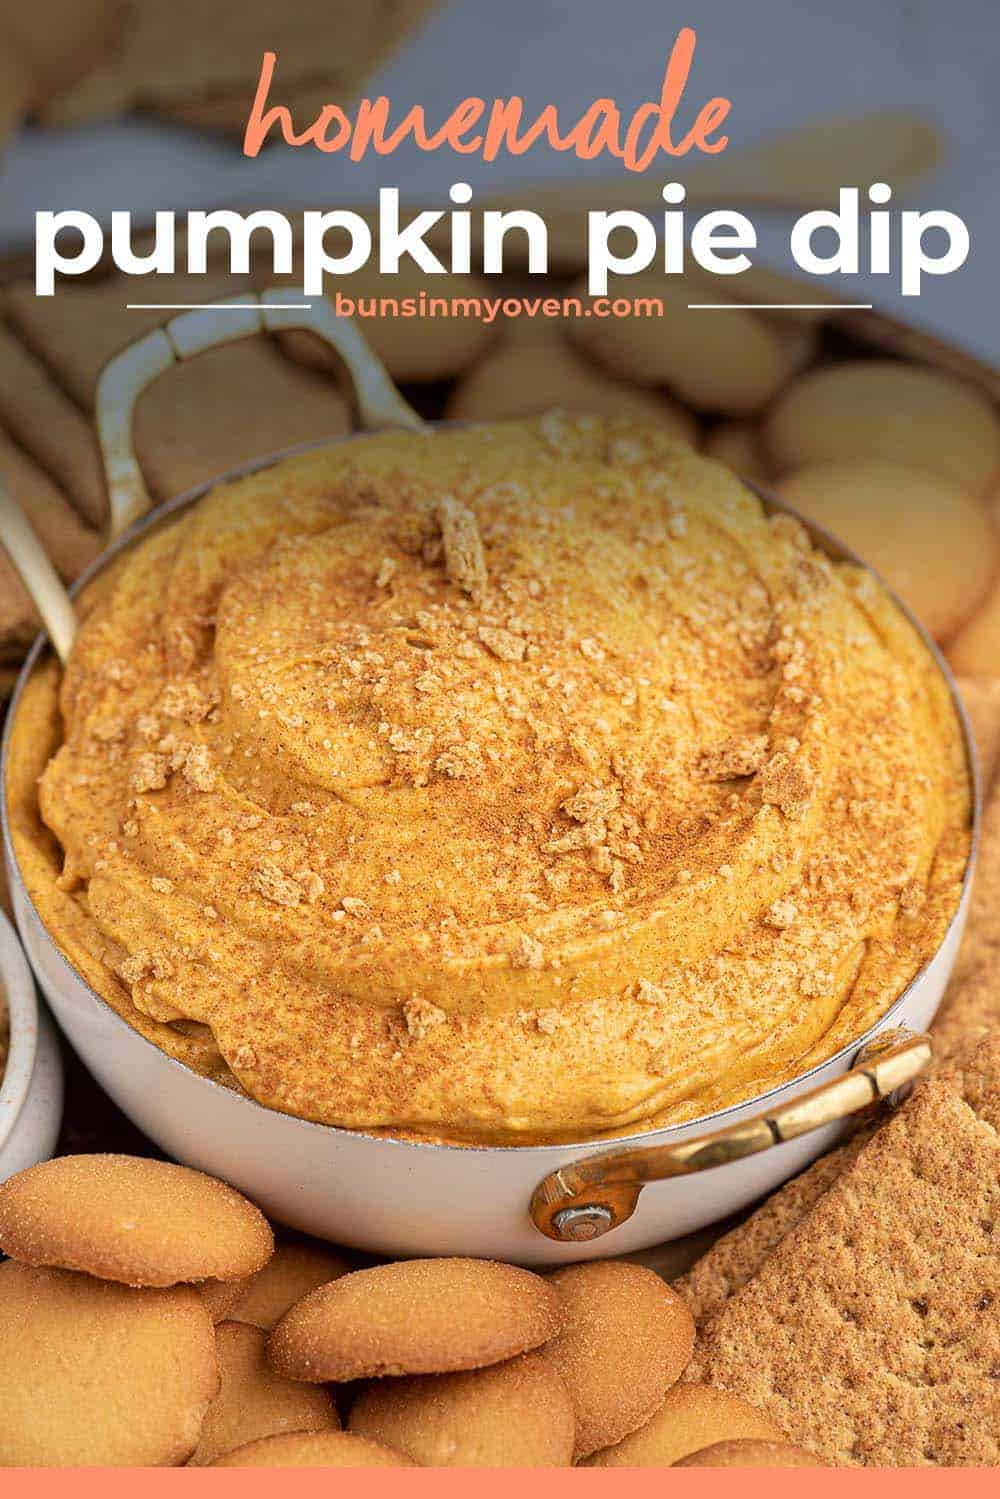 pumpkin pie dip in small dish with text for Pinterest.